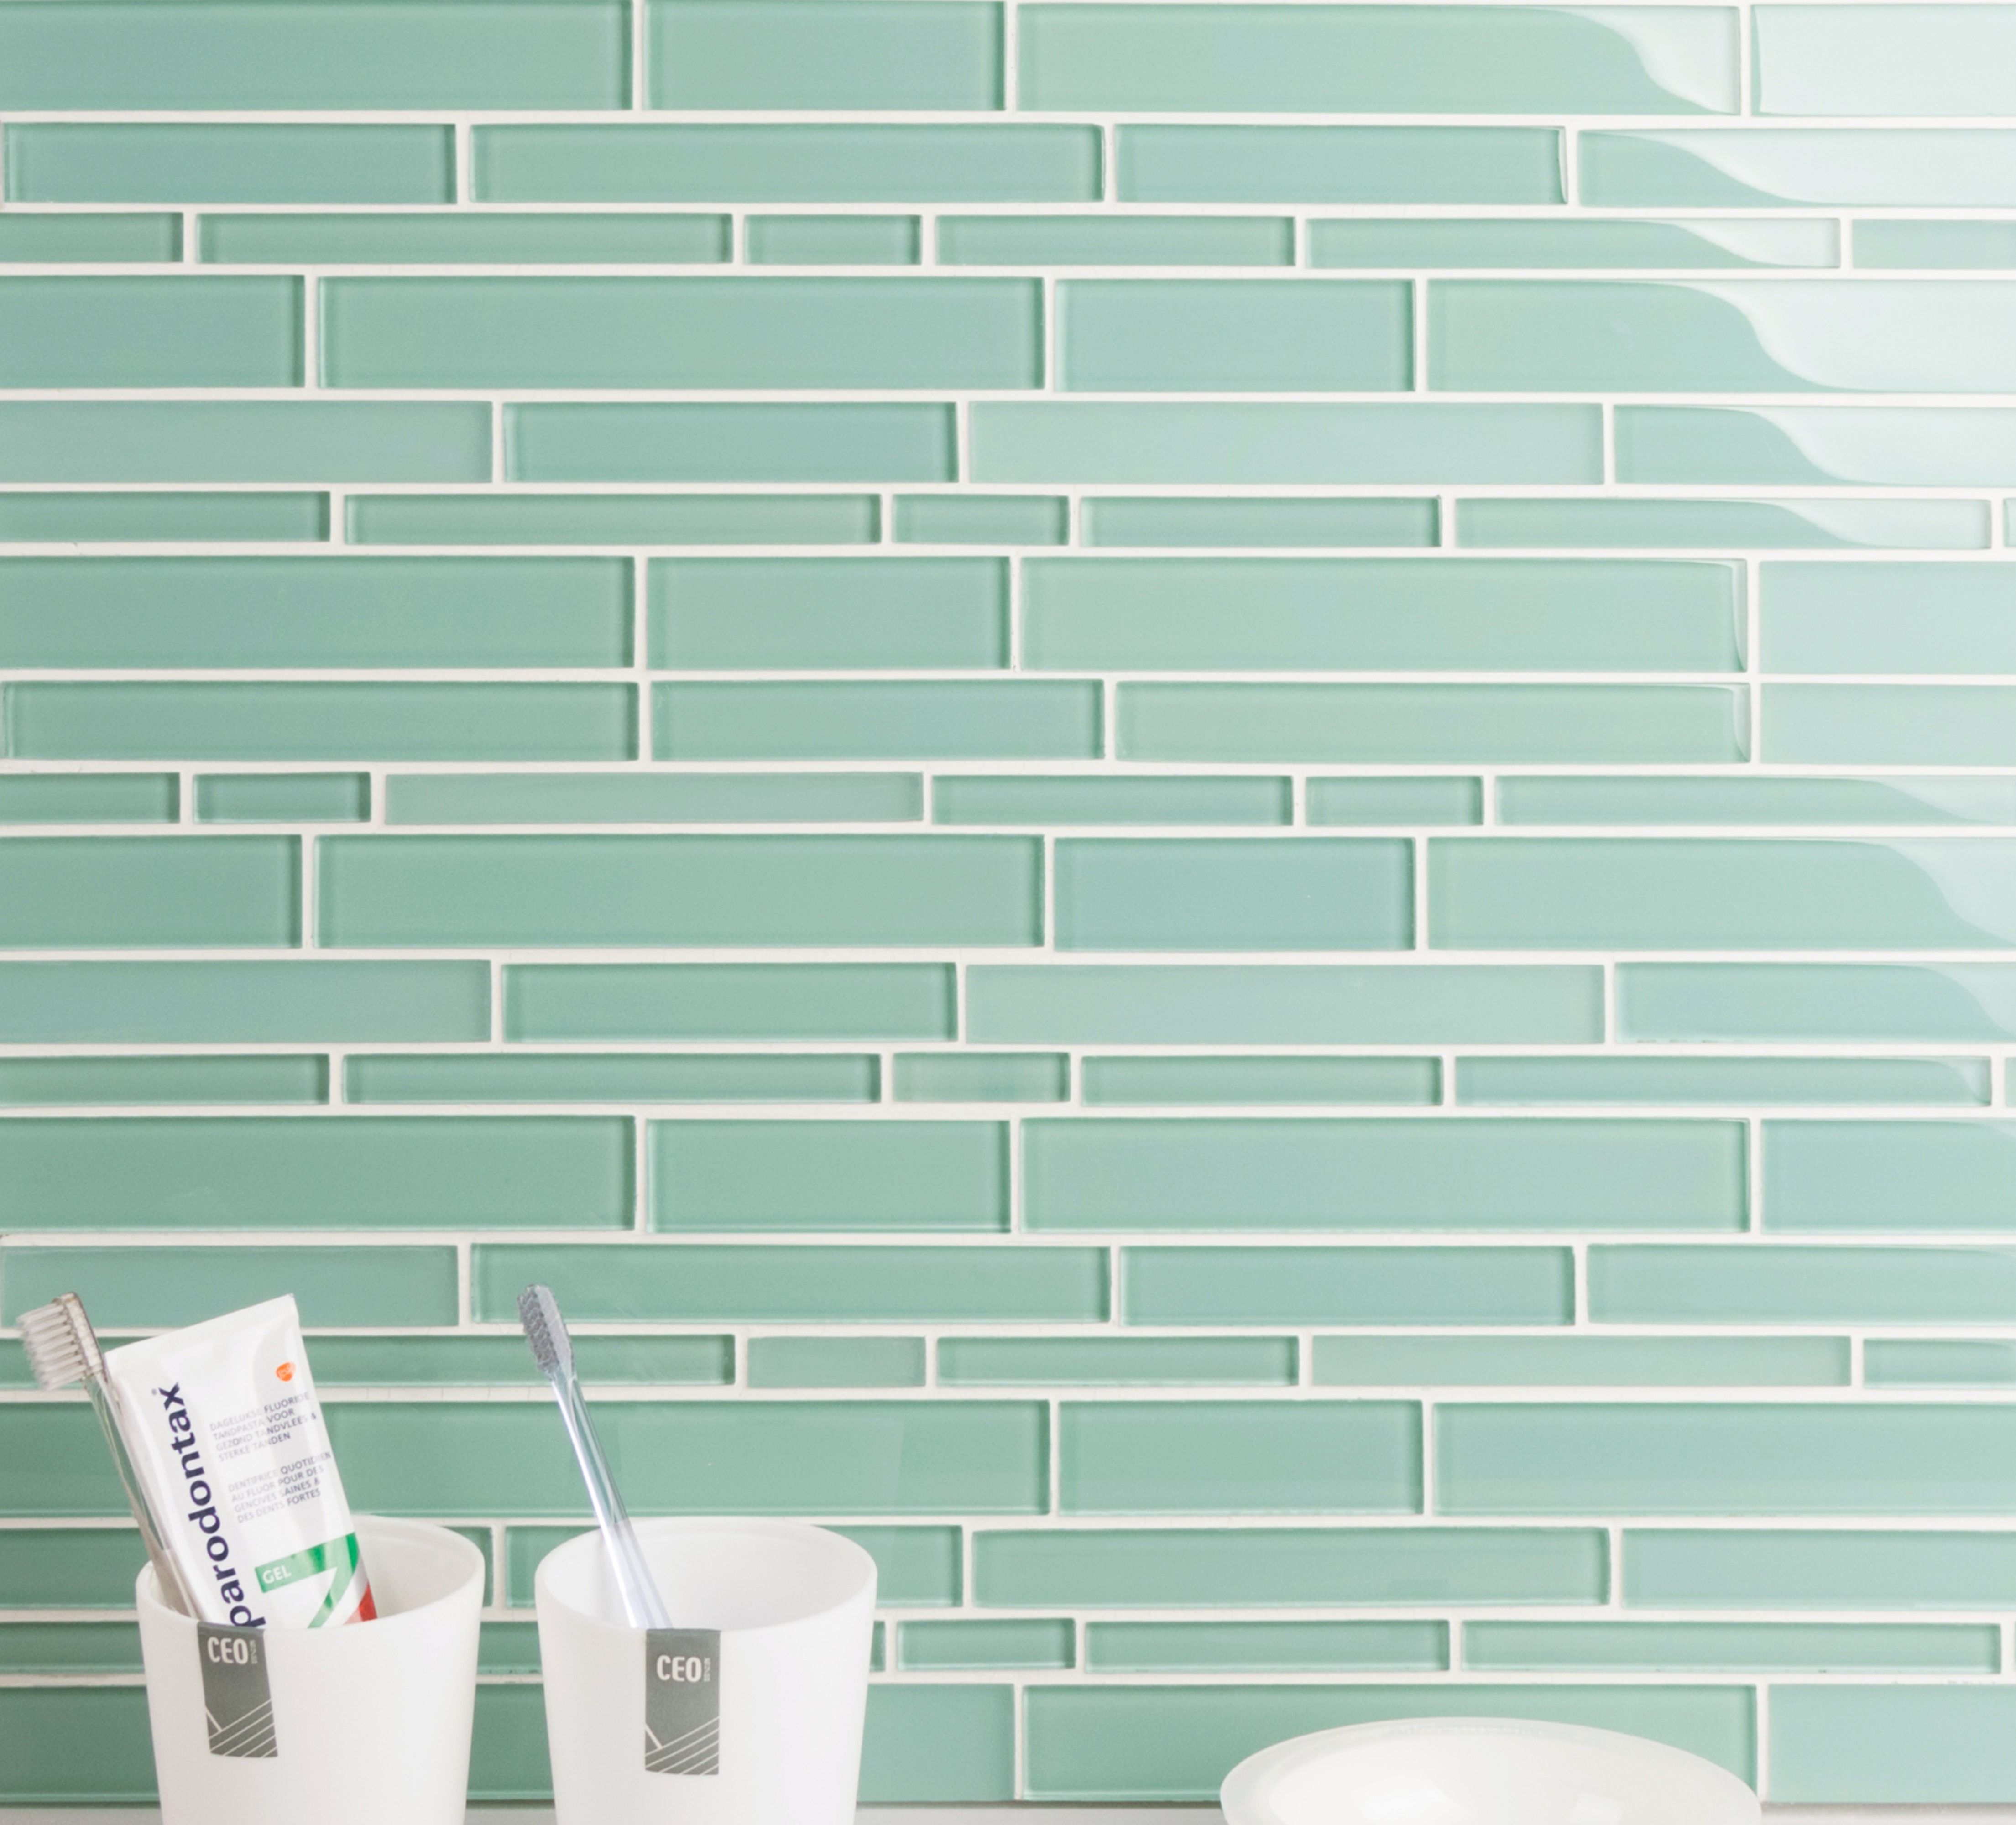 Interlocking Glass Mosaic Tile Backsplash For Kitchen And Bathroom 5 Square Feet Per Box Light Teal Teal Glass Tile Mosaic Glass Glass Mosaic Tile Backsplash